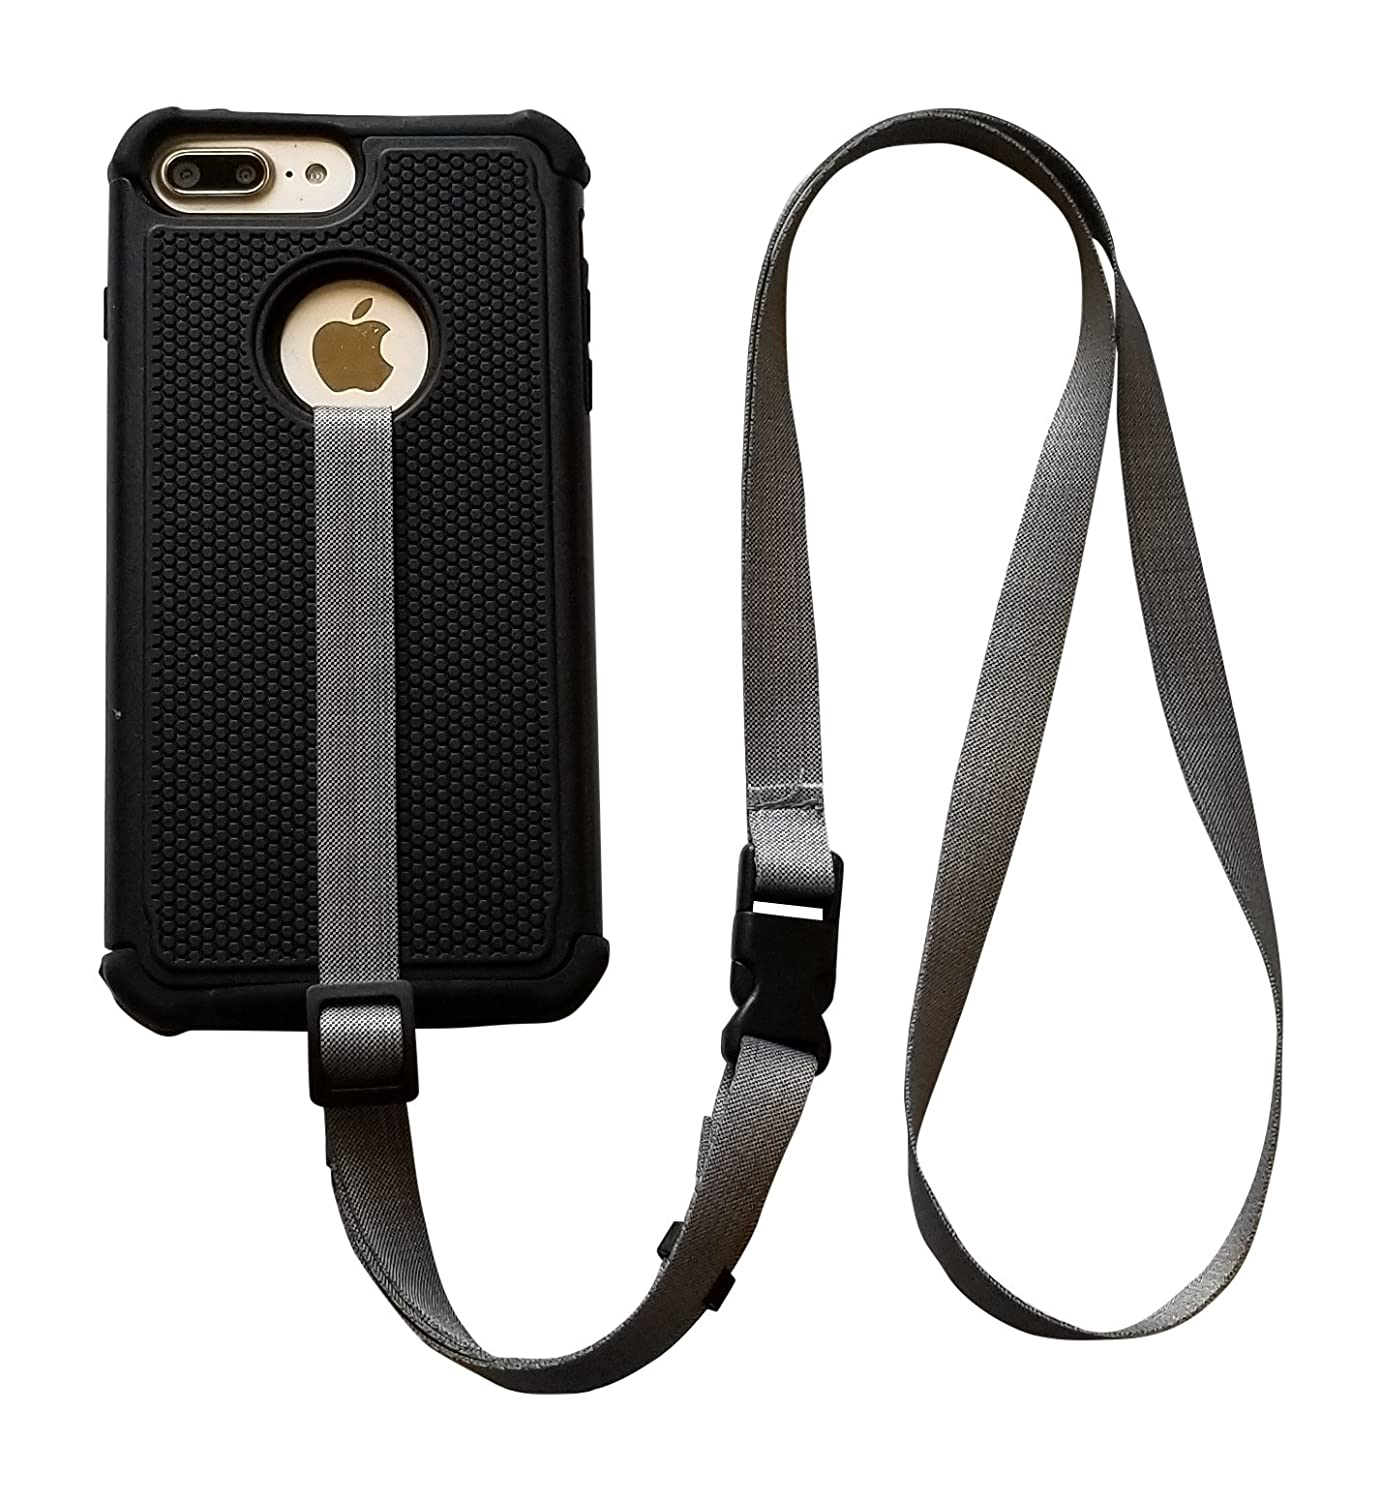 online store ede04 69c24 foneleash 3 in 1 Universal Cell Phone Lanyard Neck Wrist and Hand Strap  Tether (Shade of Gray)